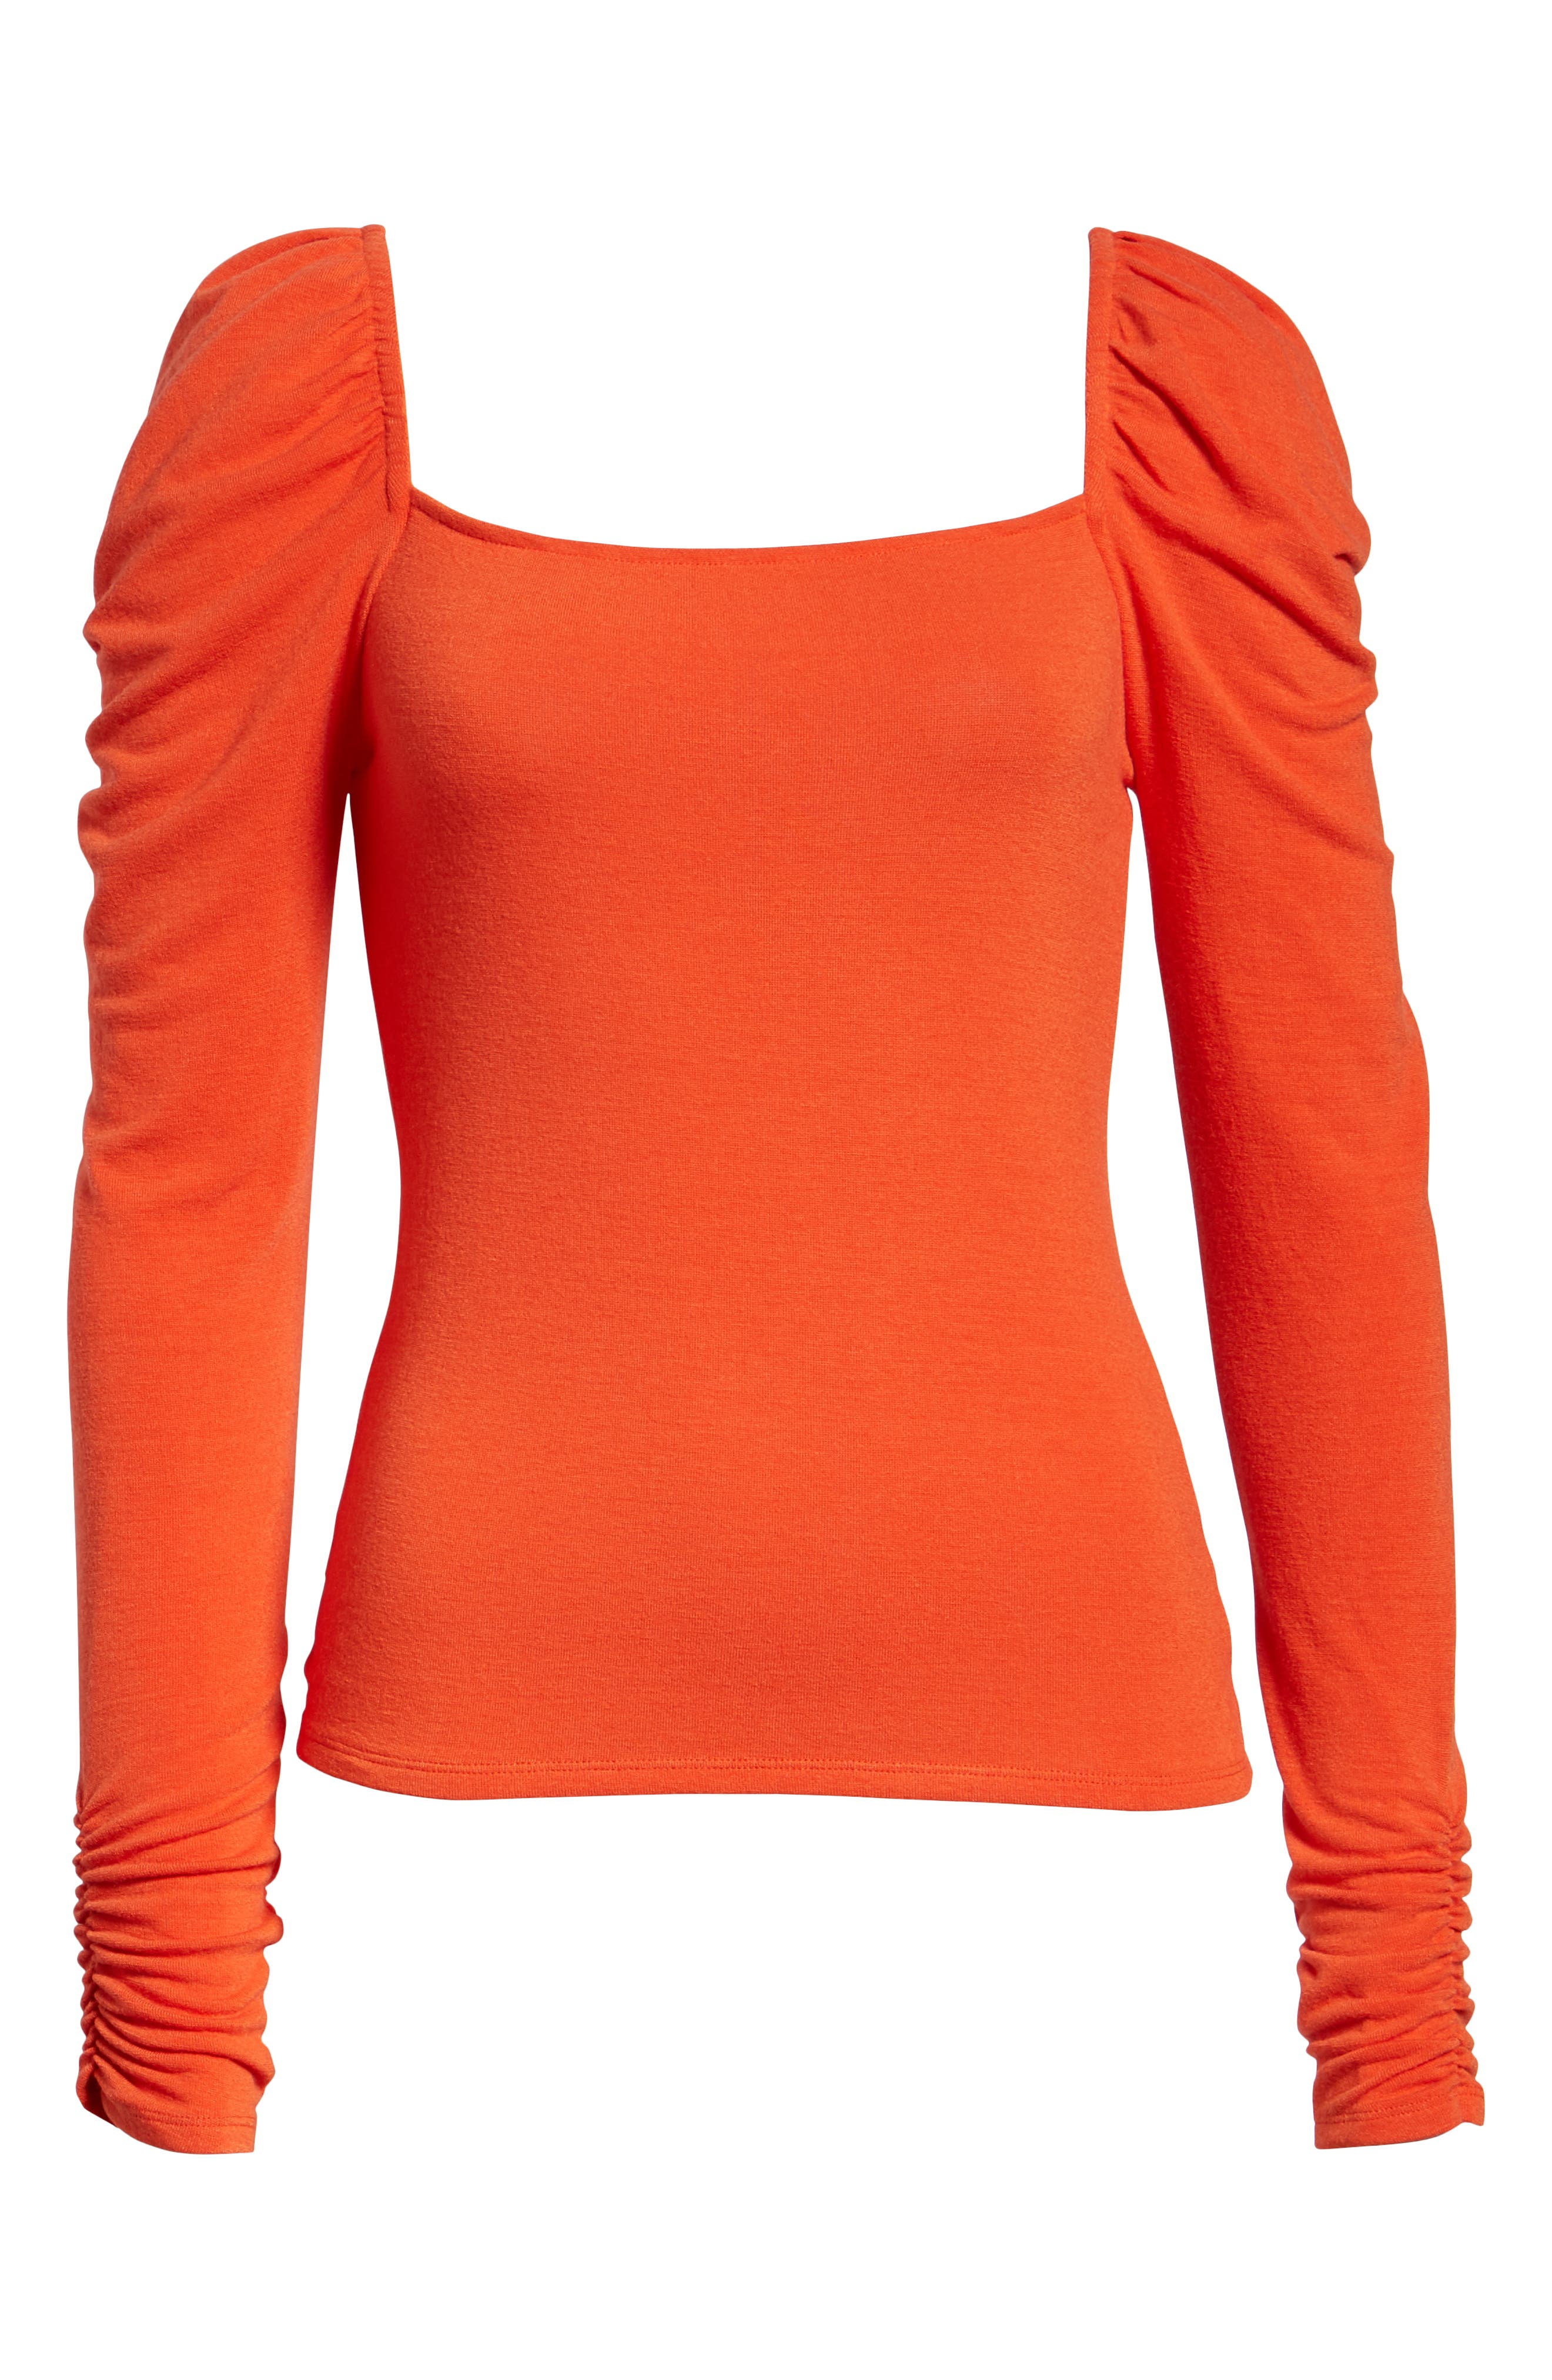 Square Neck Slim Knit Top,                             Alternate thumbnail 6, color,                             RED POINCIANA